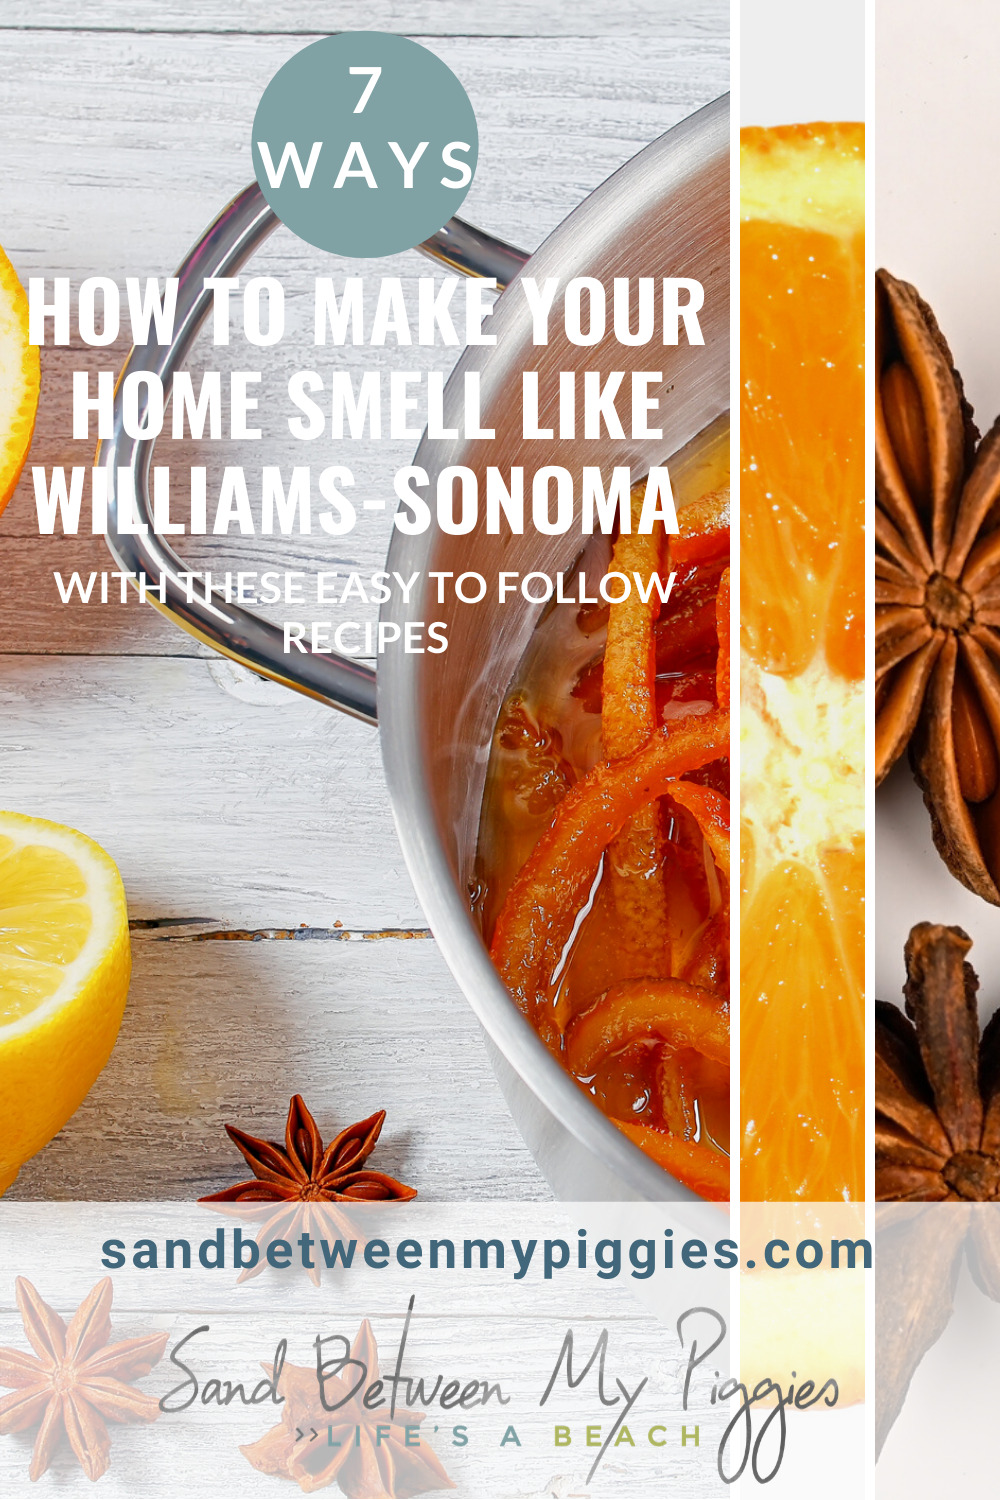 Why do stores burn candles or have delicious smelling fragrances? Simple! They do it because people like it. One of my favorite store scents comes from Williams-Sonoma. There's just something about the smell the gets to me and in a good way. If you love the smell like I do, you will want to read my post because I have learned how to create that smell and it's easy. Read on to make your house smell like Williams-Sonoma. #williamssonoma #DIYscents #makeyourhousesmelllikewilliamssonoma